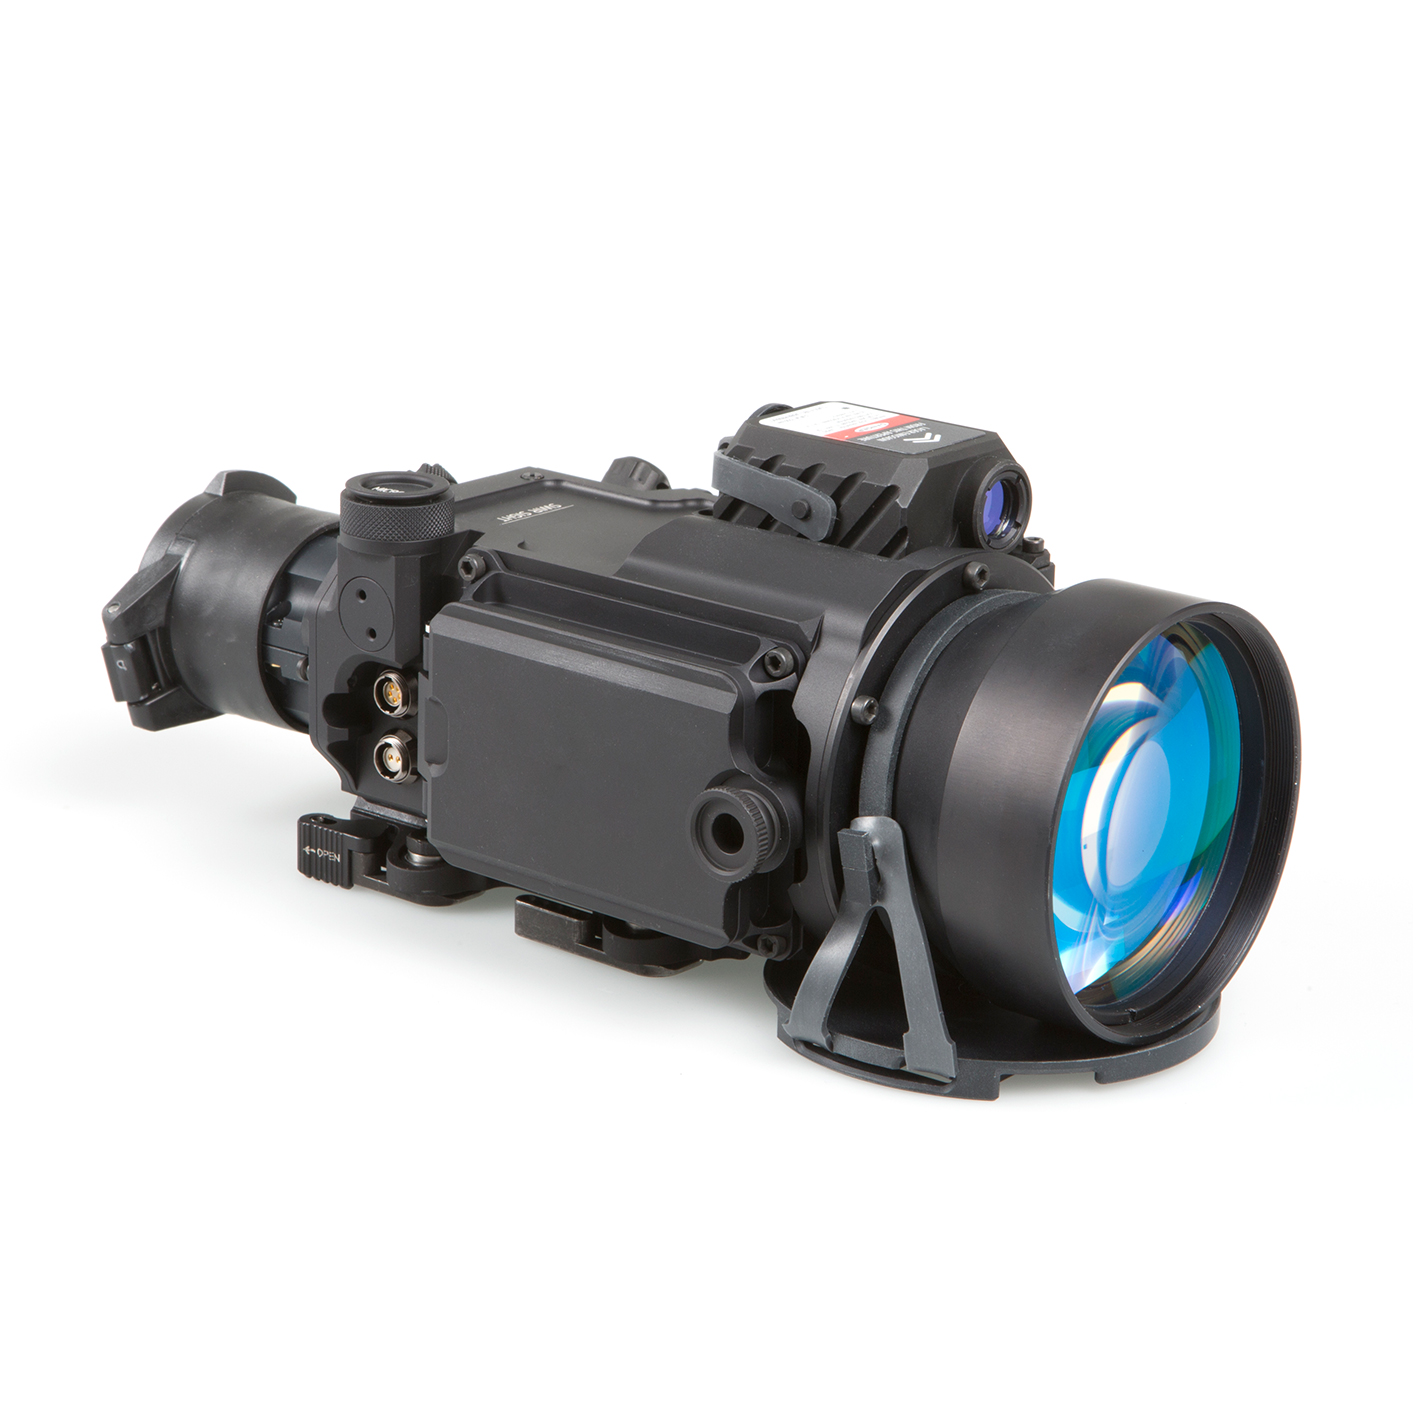 Brolis Sight S100U SWIR Weapon Sight